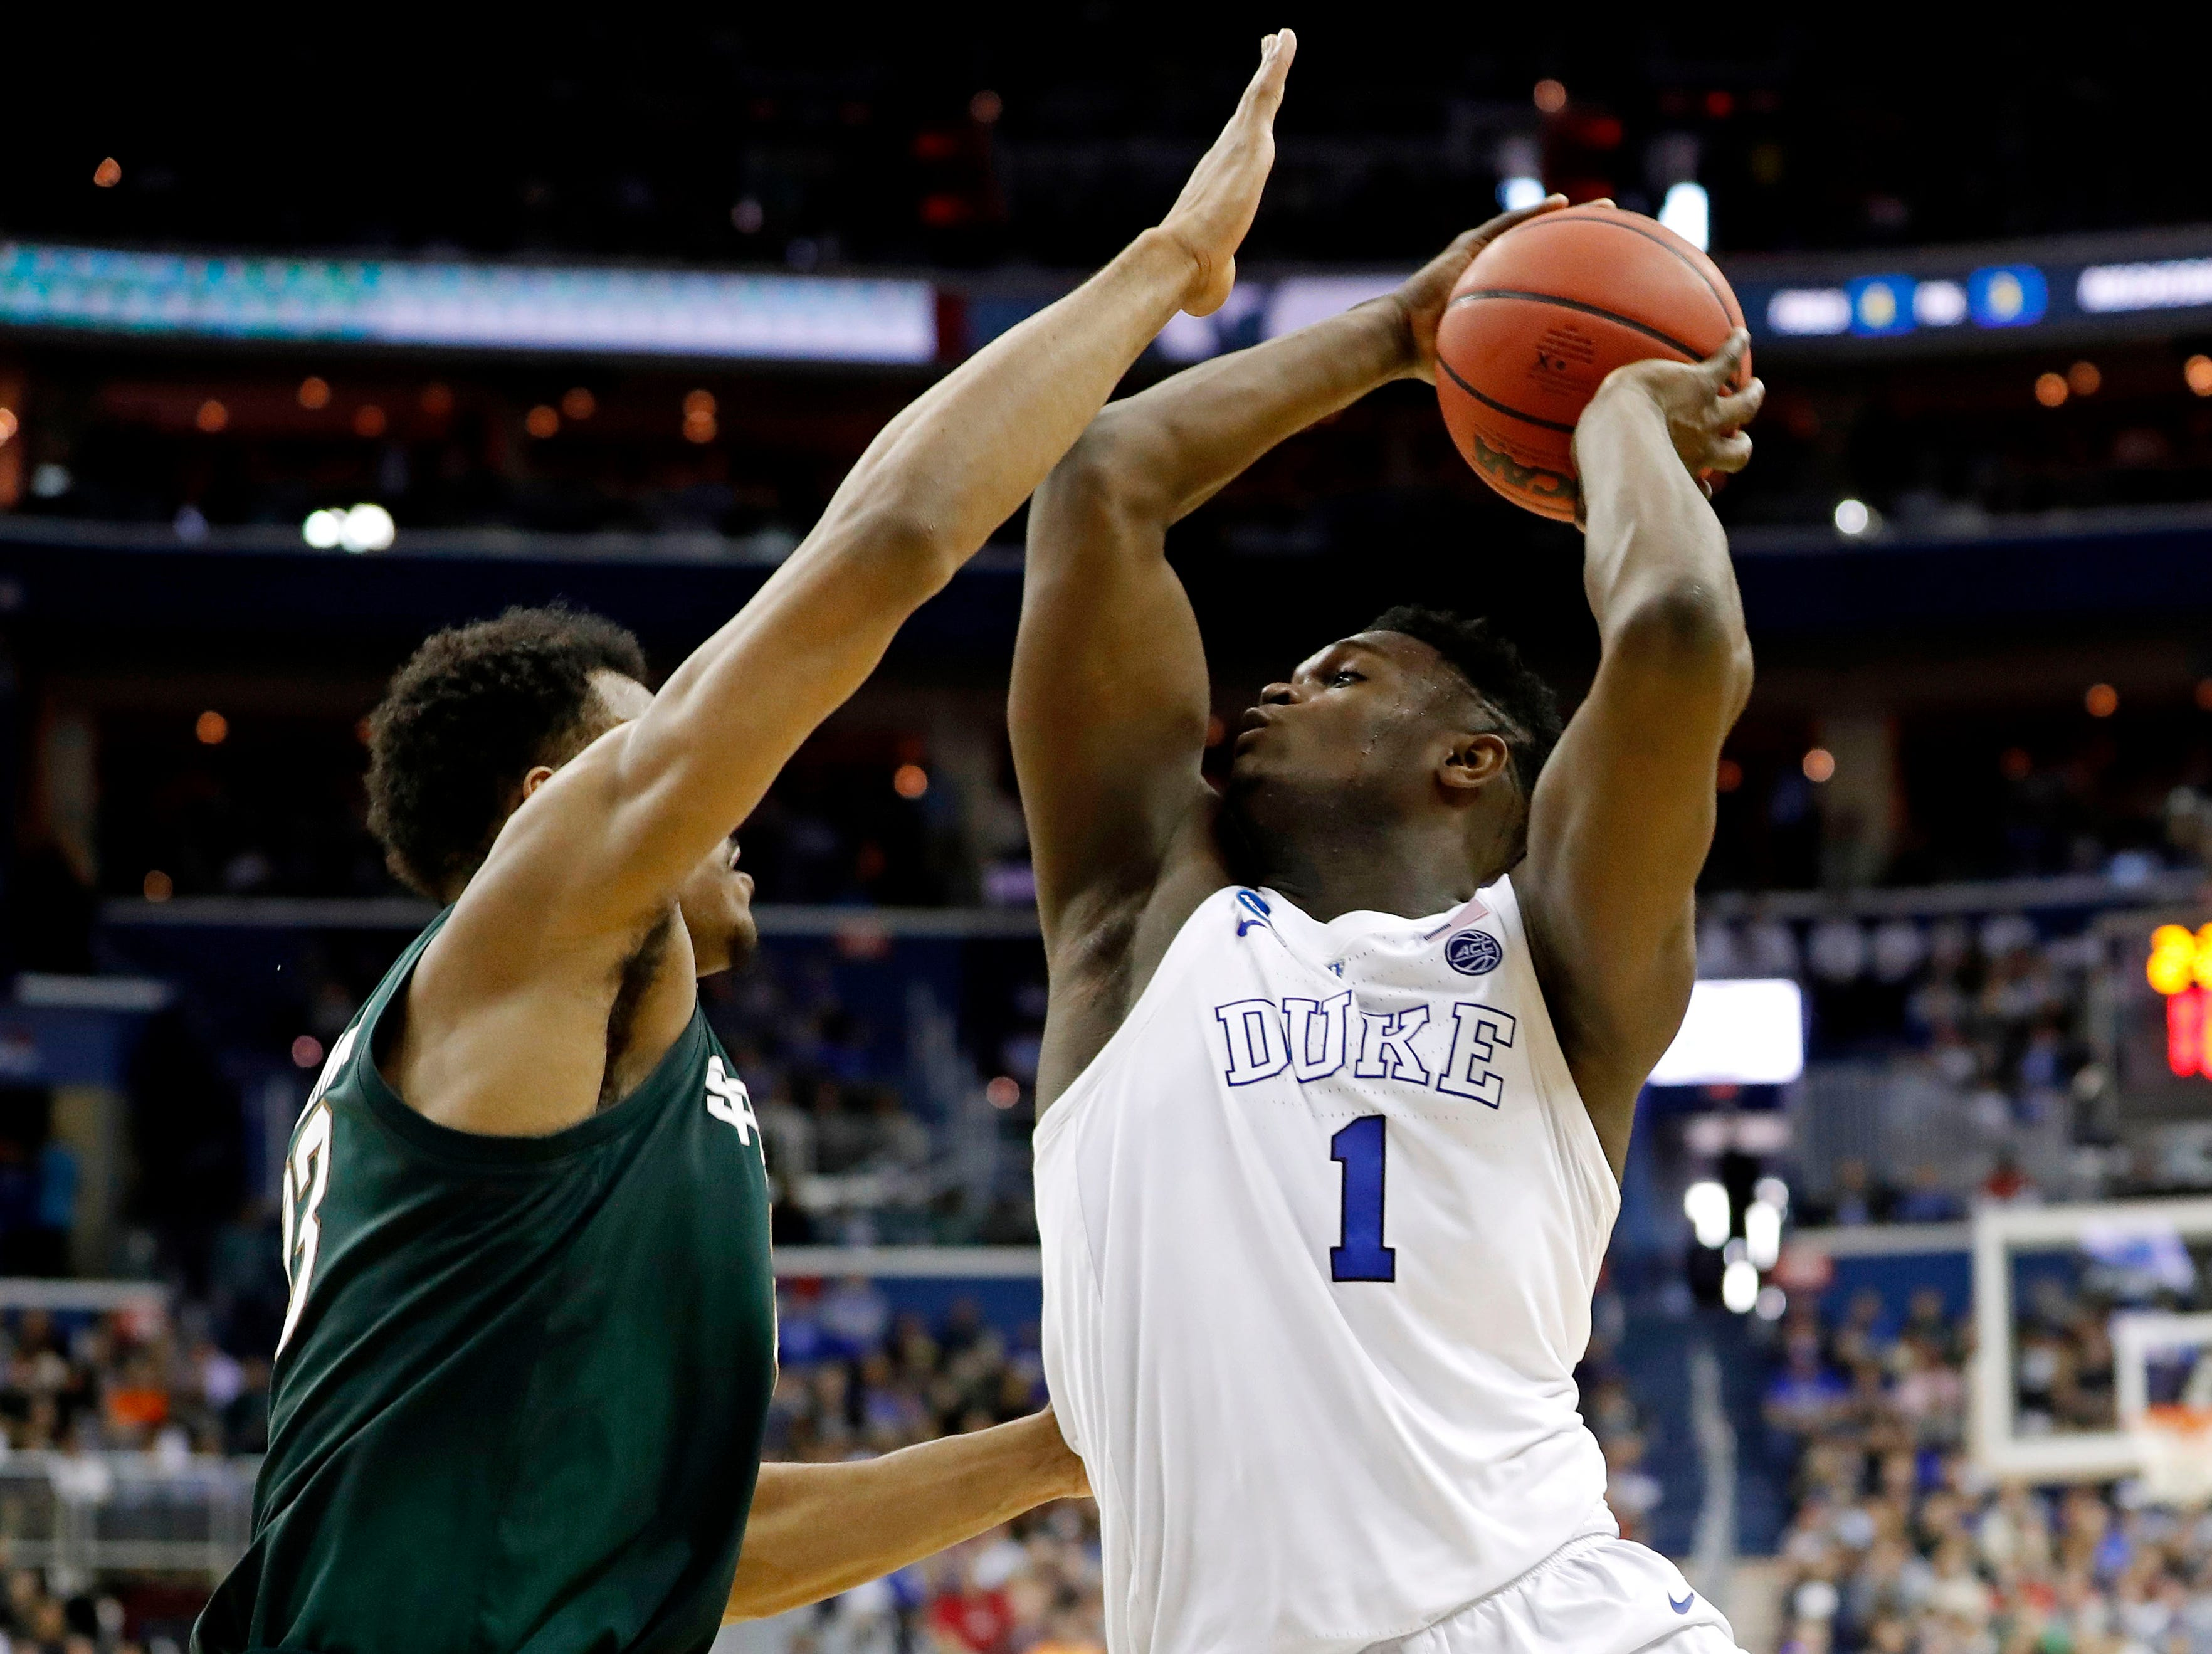 Mar 31, 2019; Washington, DC, USA; Duke Blue Devils forward Zion Williamson (1) drives to the basket against Michigan State Spartans forward Xavier Tillman (23) during the first half in the championship game of the east regional of the 2019 NCAA Tournament at Capital One Arena. Mandatory Credit: Geoff Burke-USA TODAY Sports